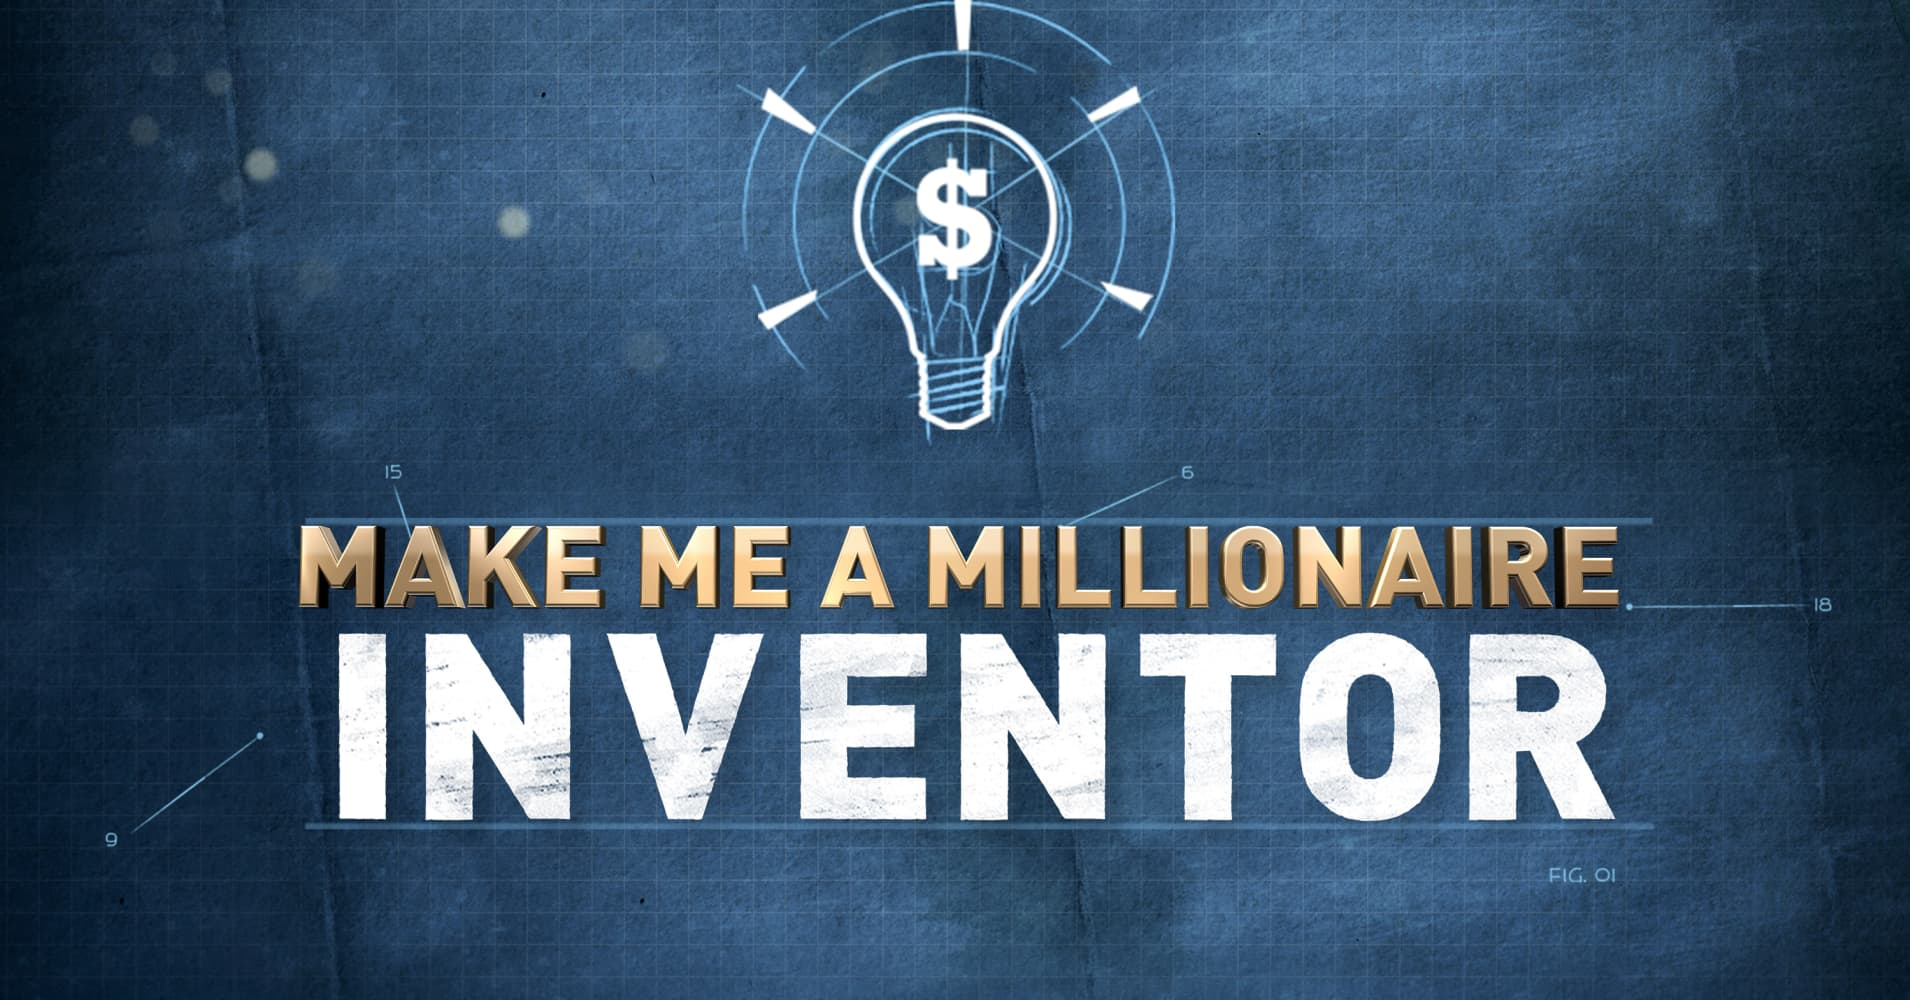 Make Me A Millionaire Inventor Home Cnbc Prime